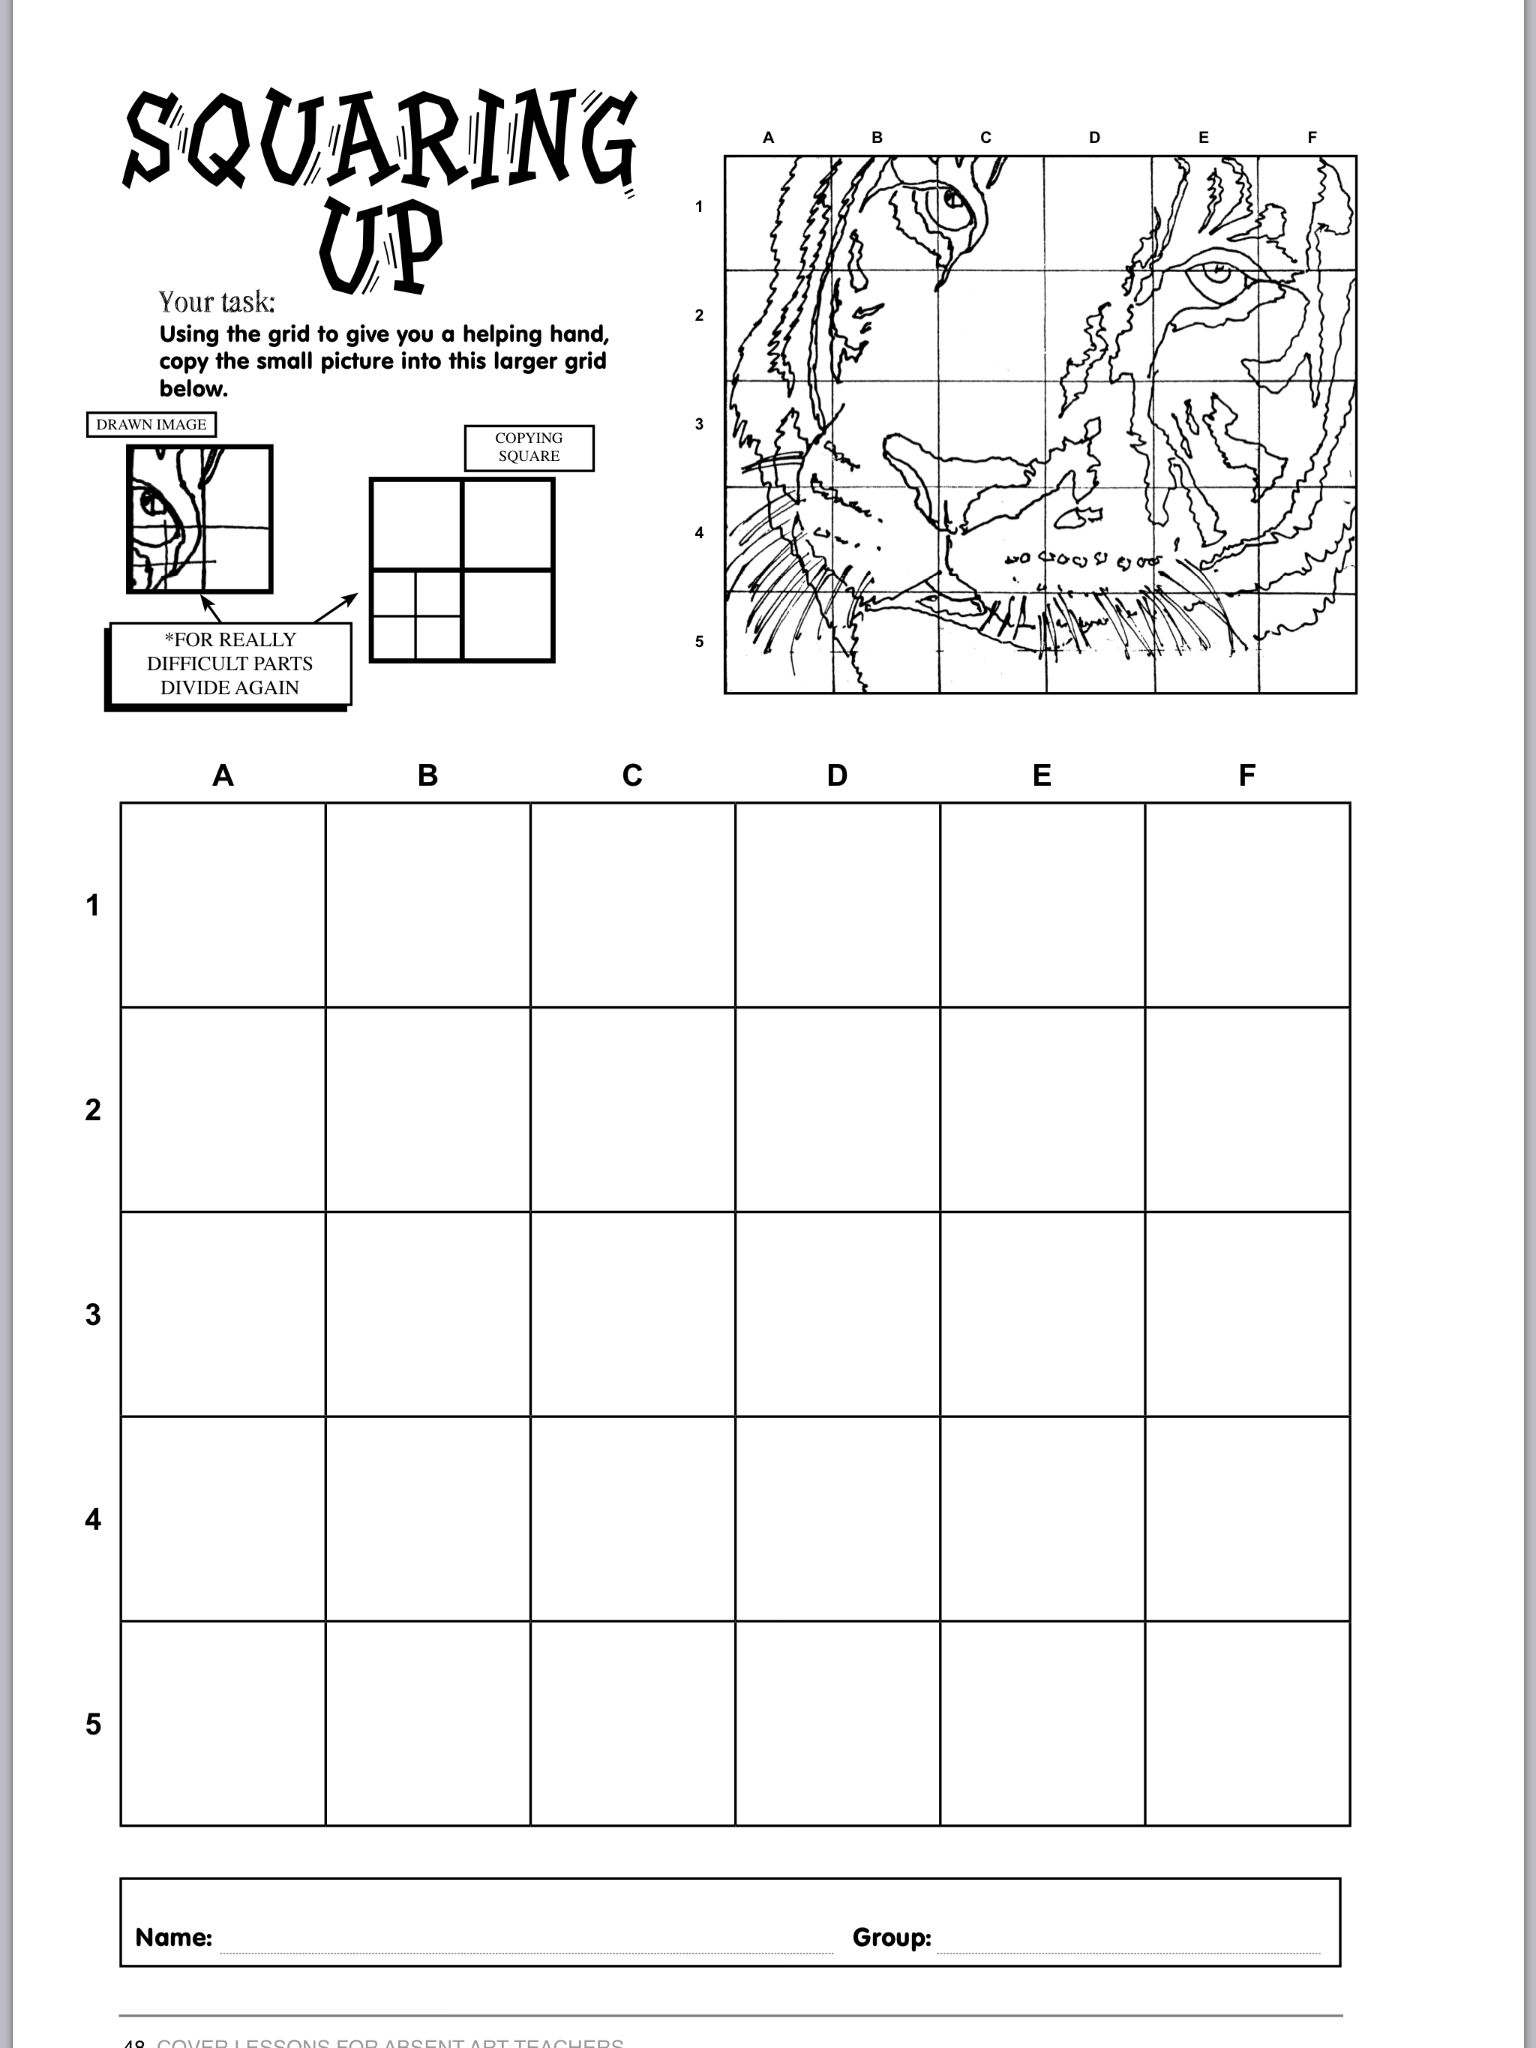 Worksheets Grid Art Worksheets this is an excellent tool to practice making lines and learning how squaring up a grid shade sometimes in art class